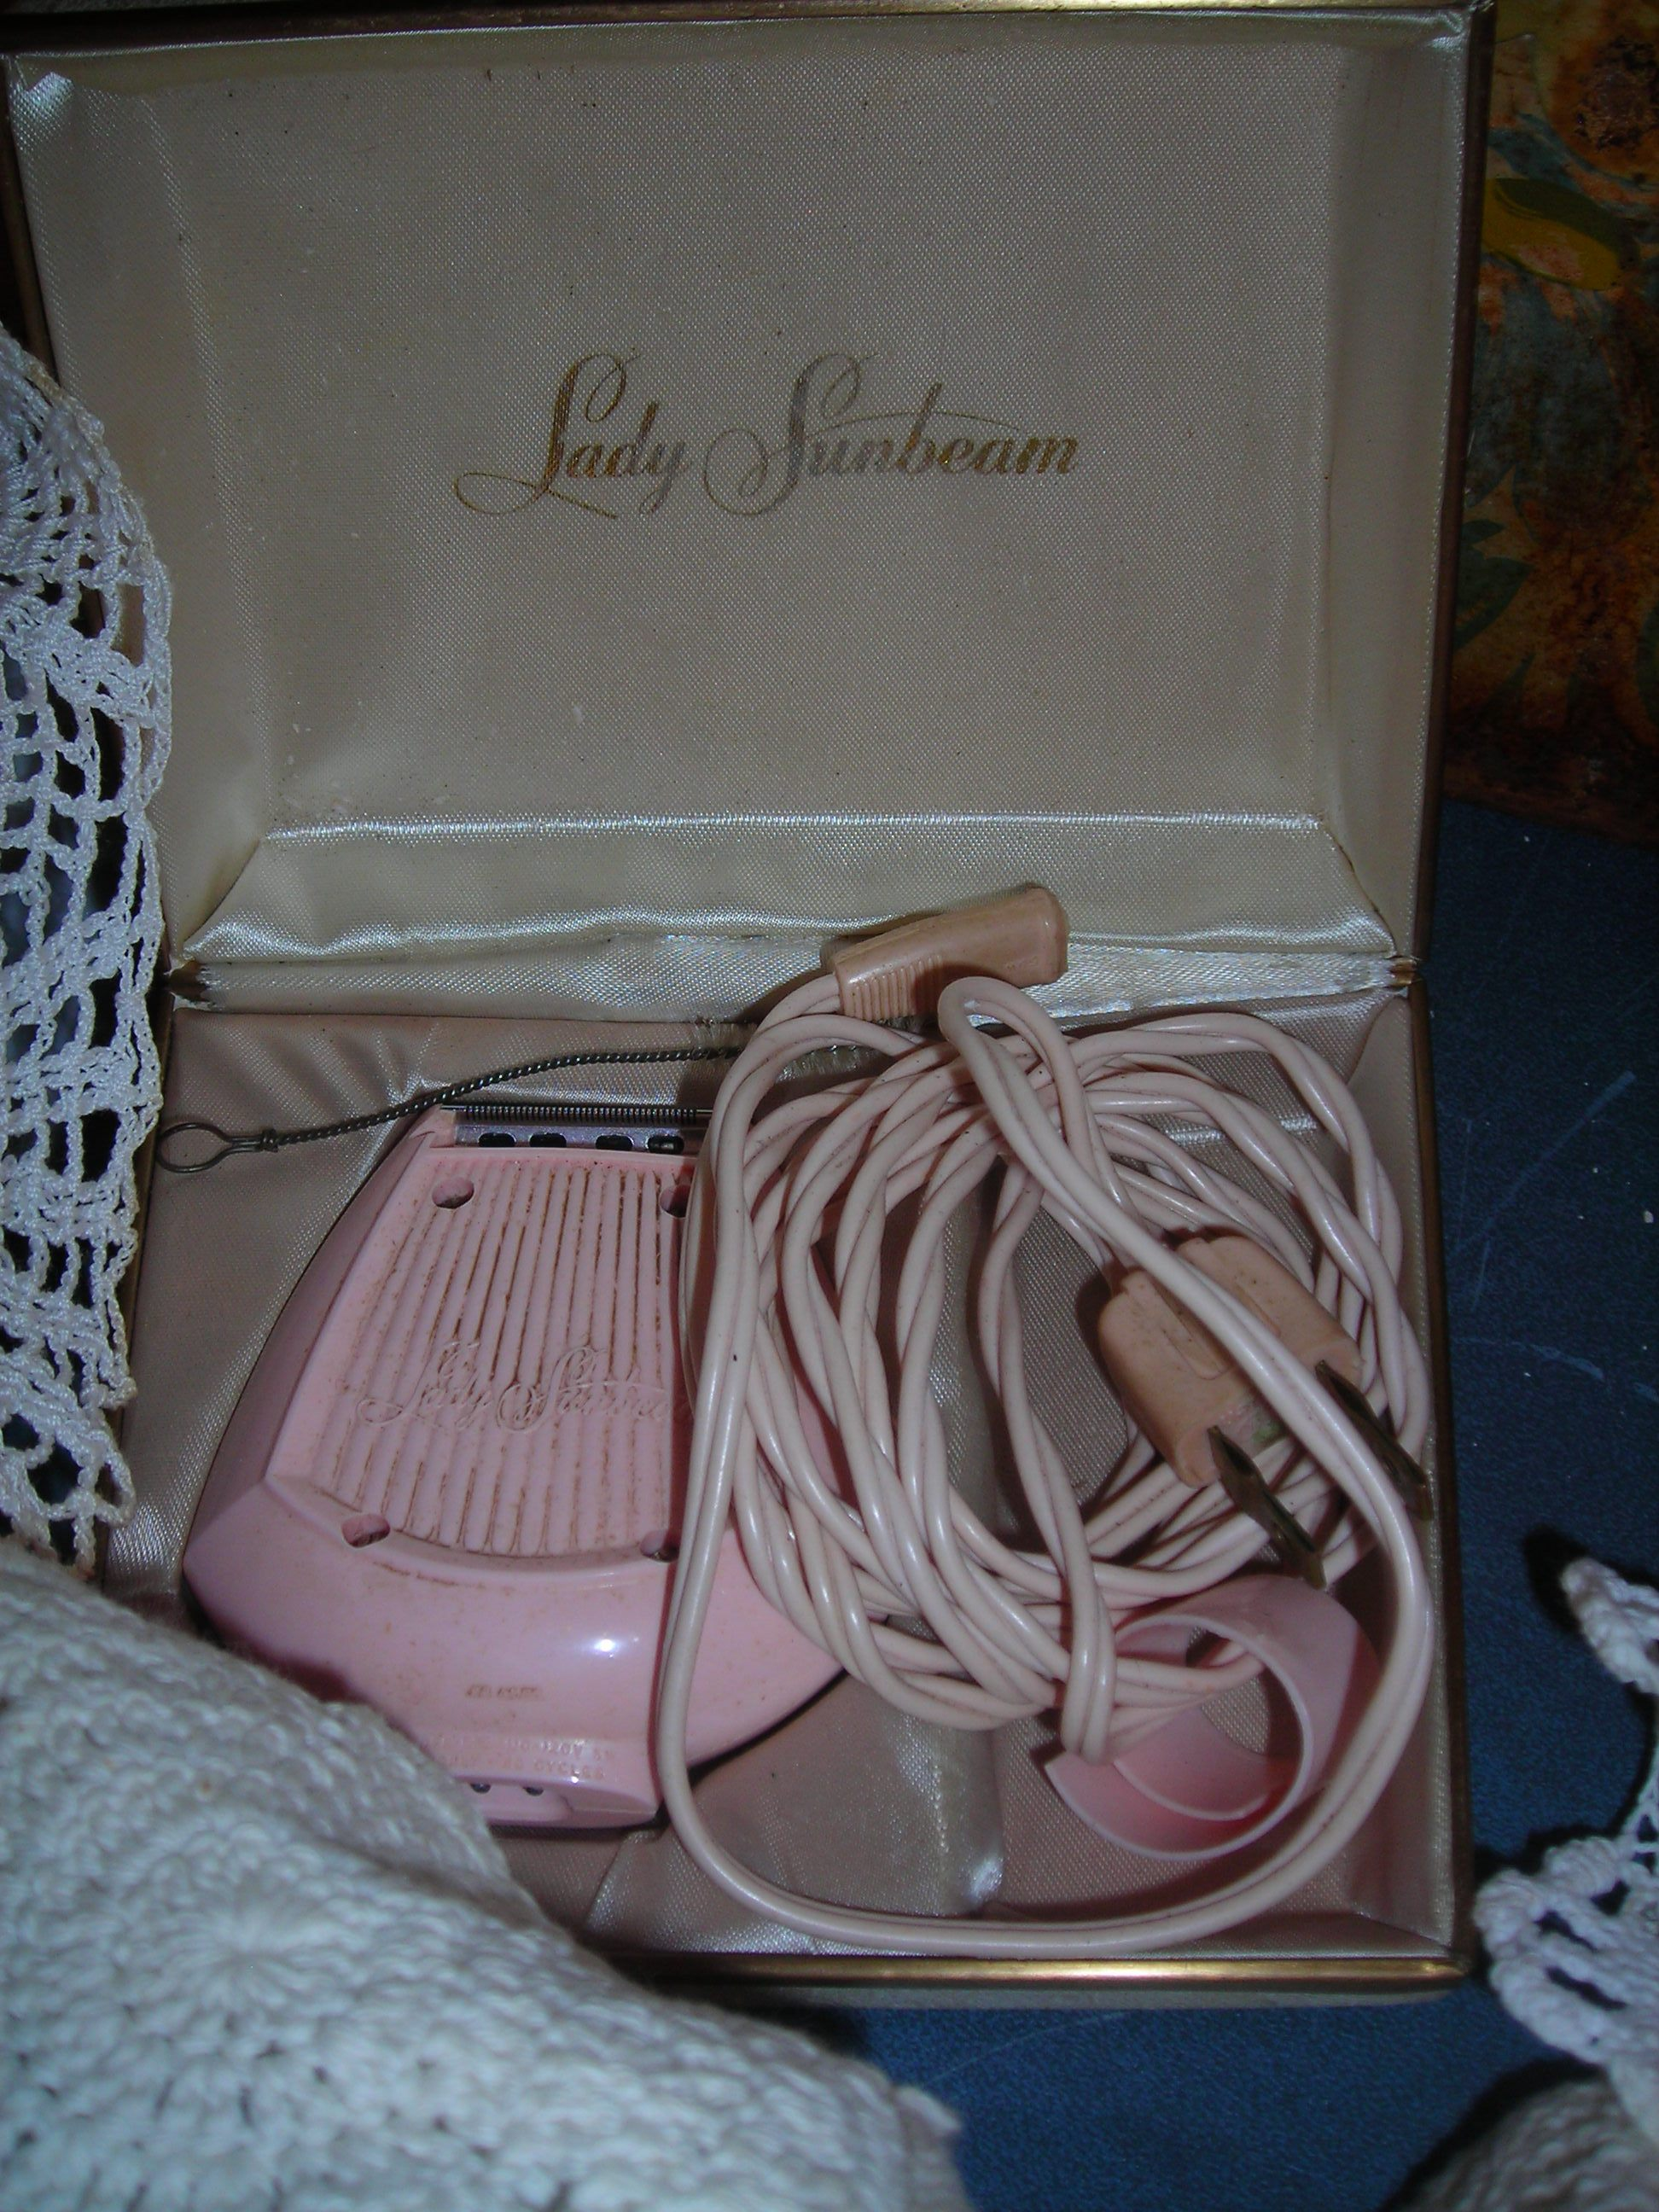 the vintage pink lady sunbeam (for 'underarms') ha!